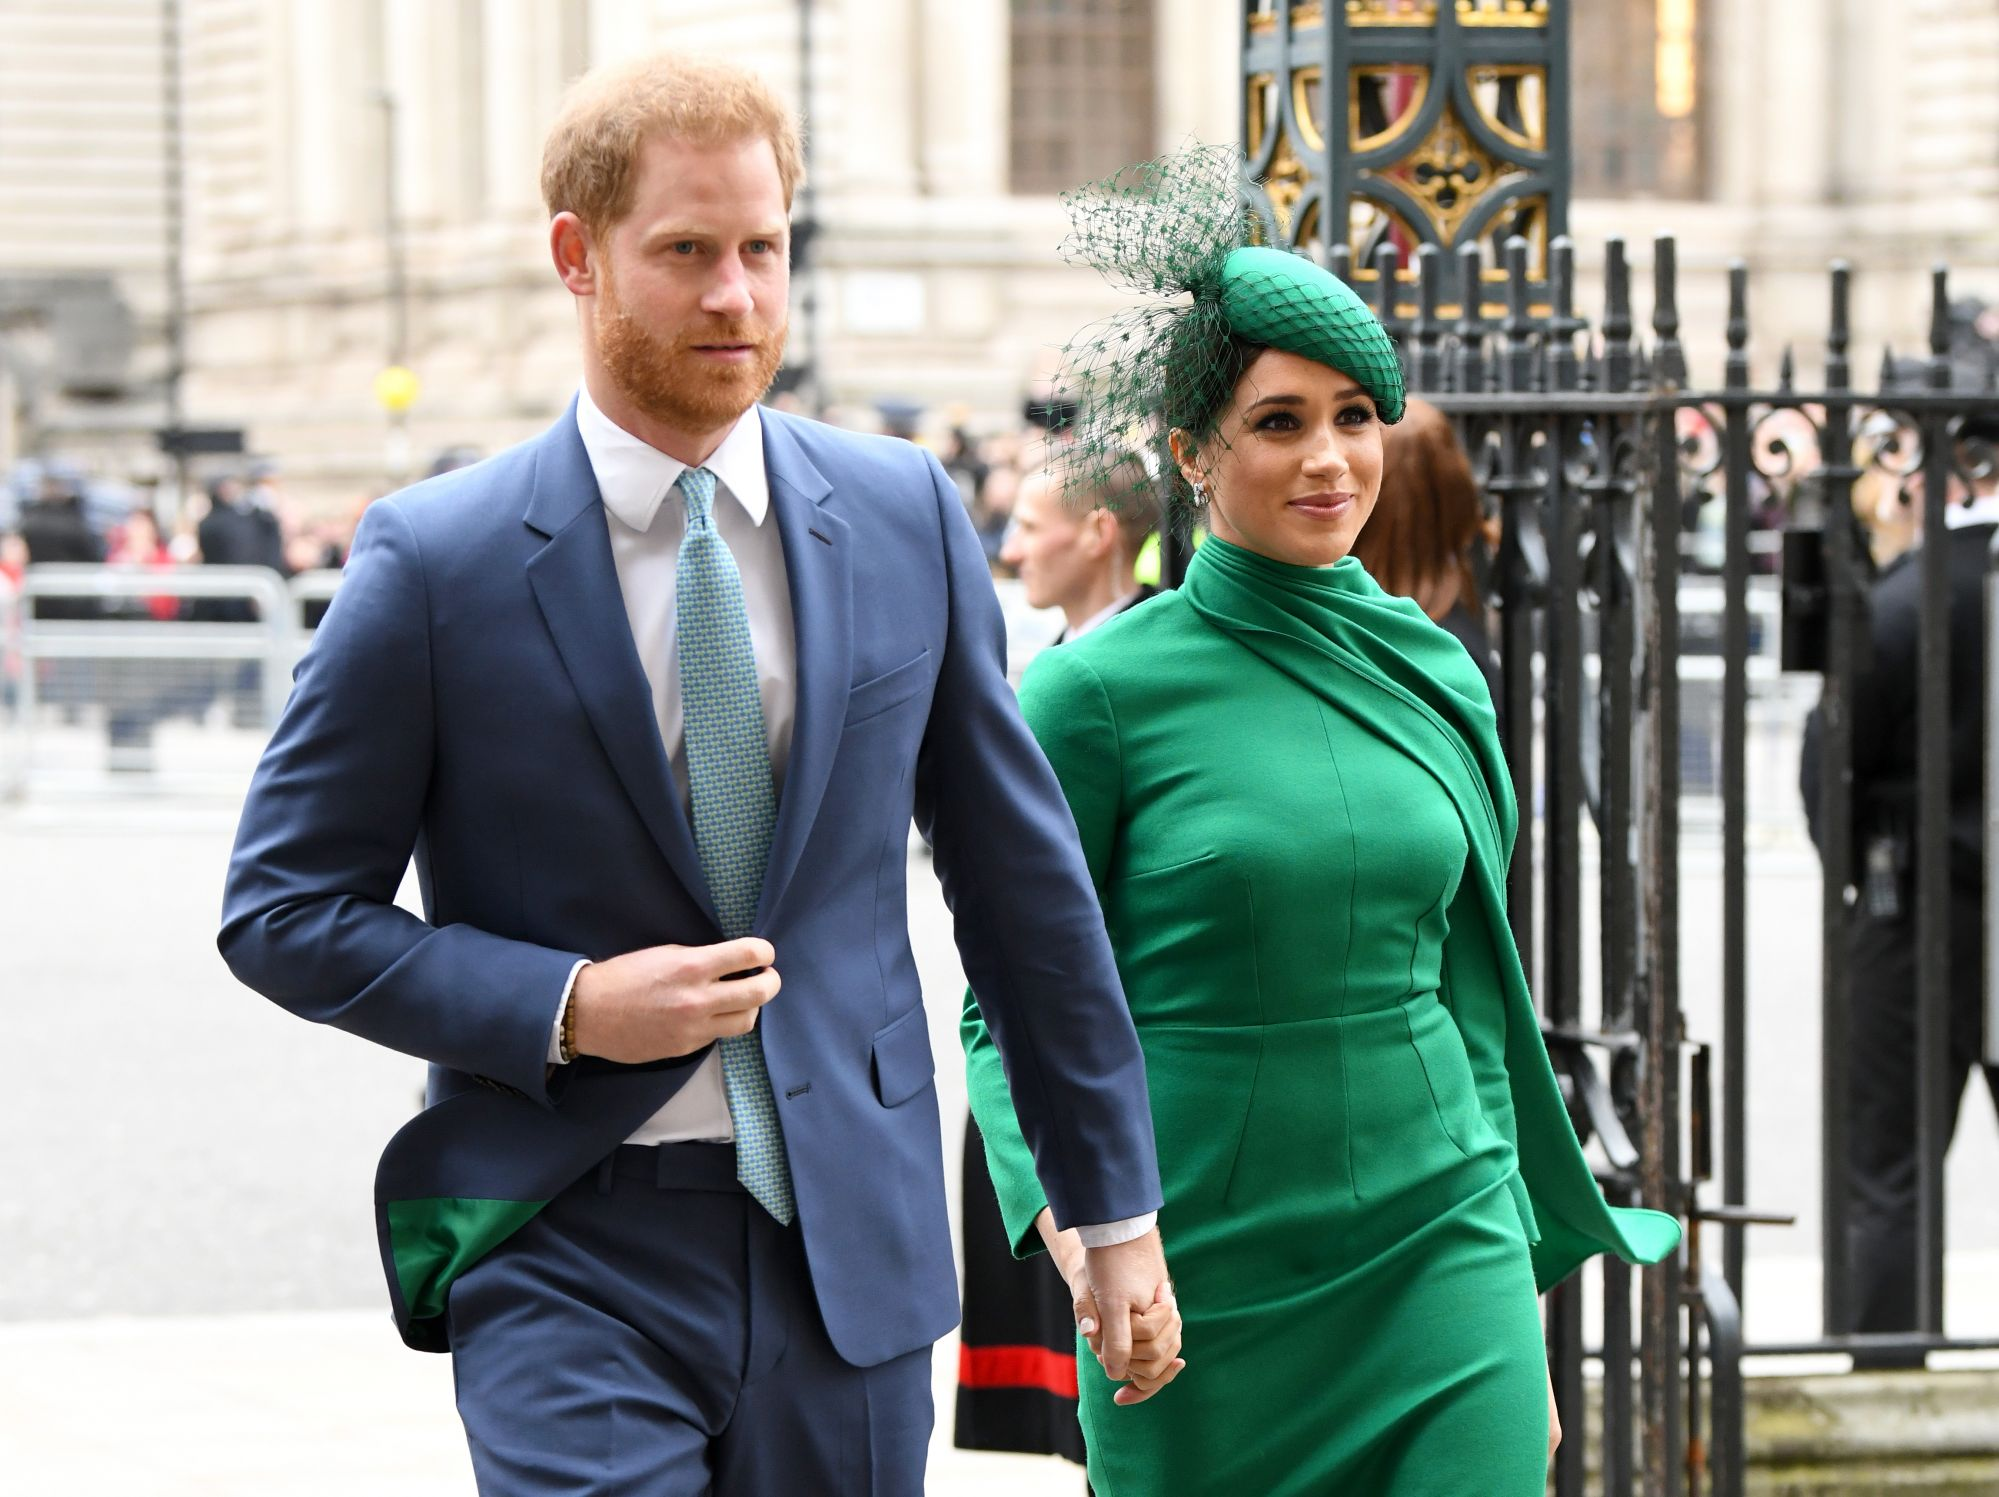 prince harry and meghan markle make last appearance as senior royals tatler hong kong prince harry and meghan markle make